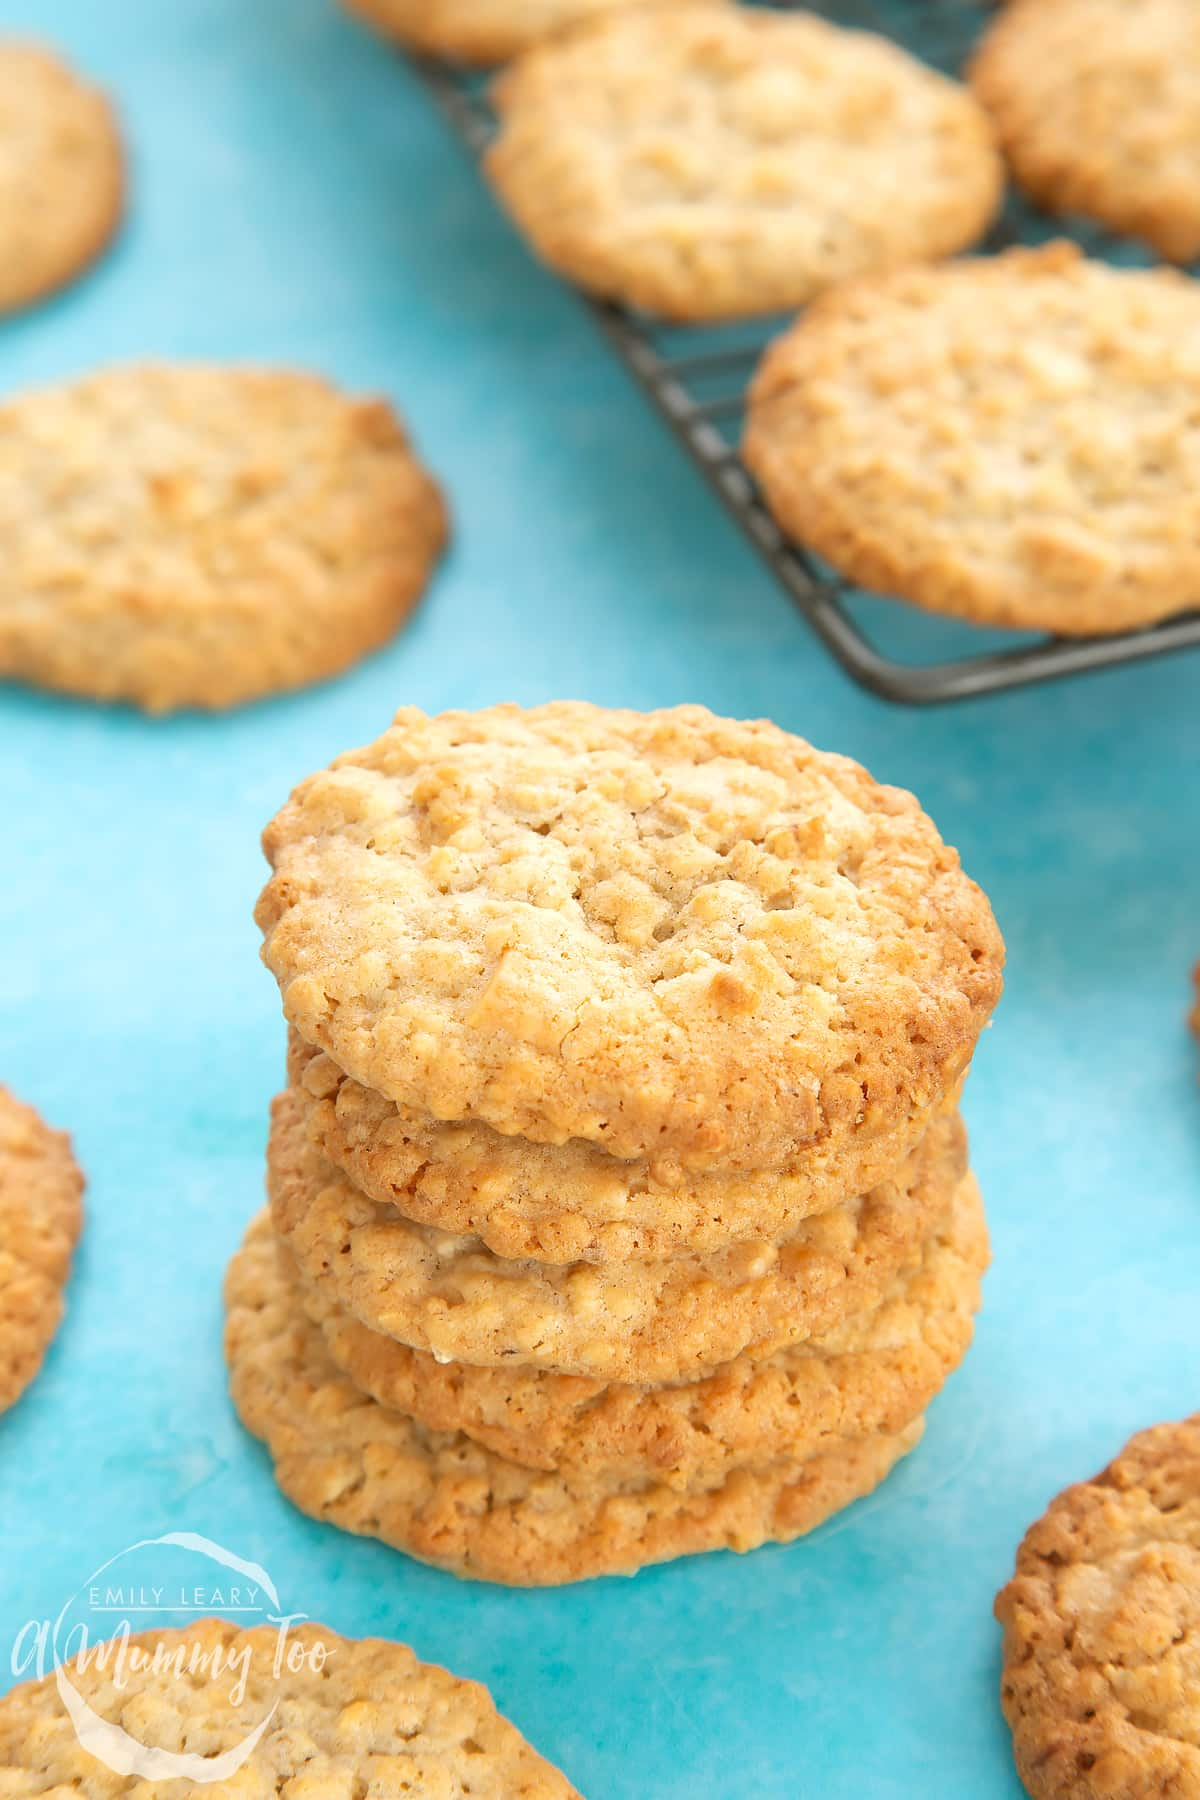 Front view shot of a stack of white chocolate chip oatmeal cookies